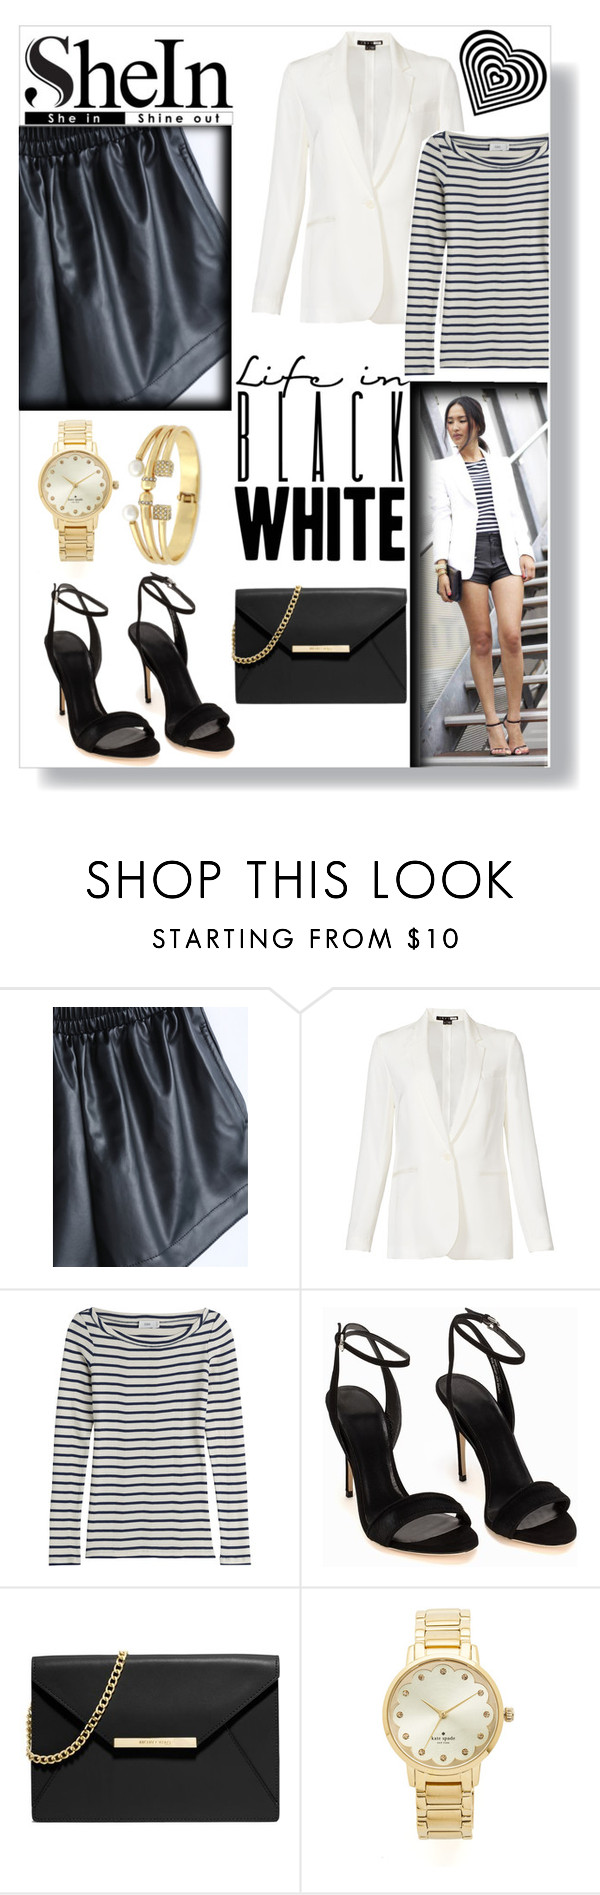 """""""Black and white"""" by imajaa ❤ liked on Polyvore featuring Theory, Closed, Polo Ralph Lauren, MICHAEL Michael Kors, Kate Spade, BCBGeneration, women's clothing, women, female and woman"""